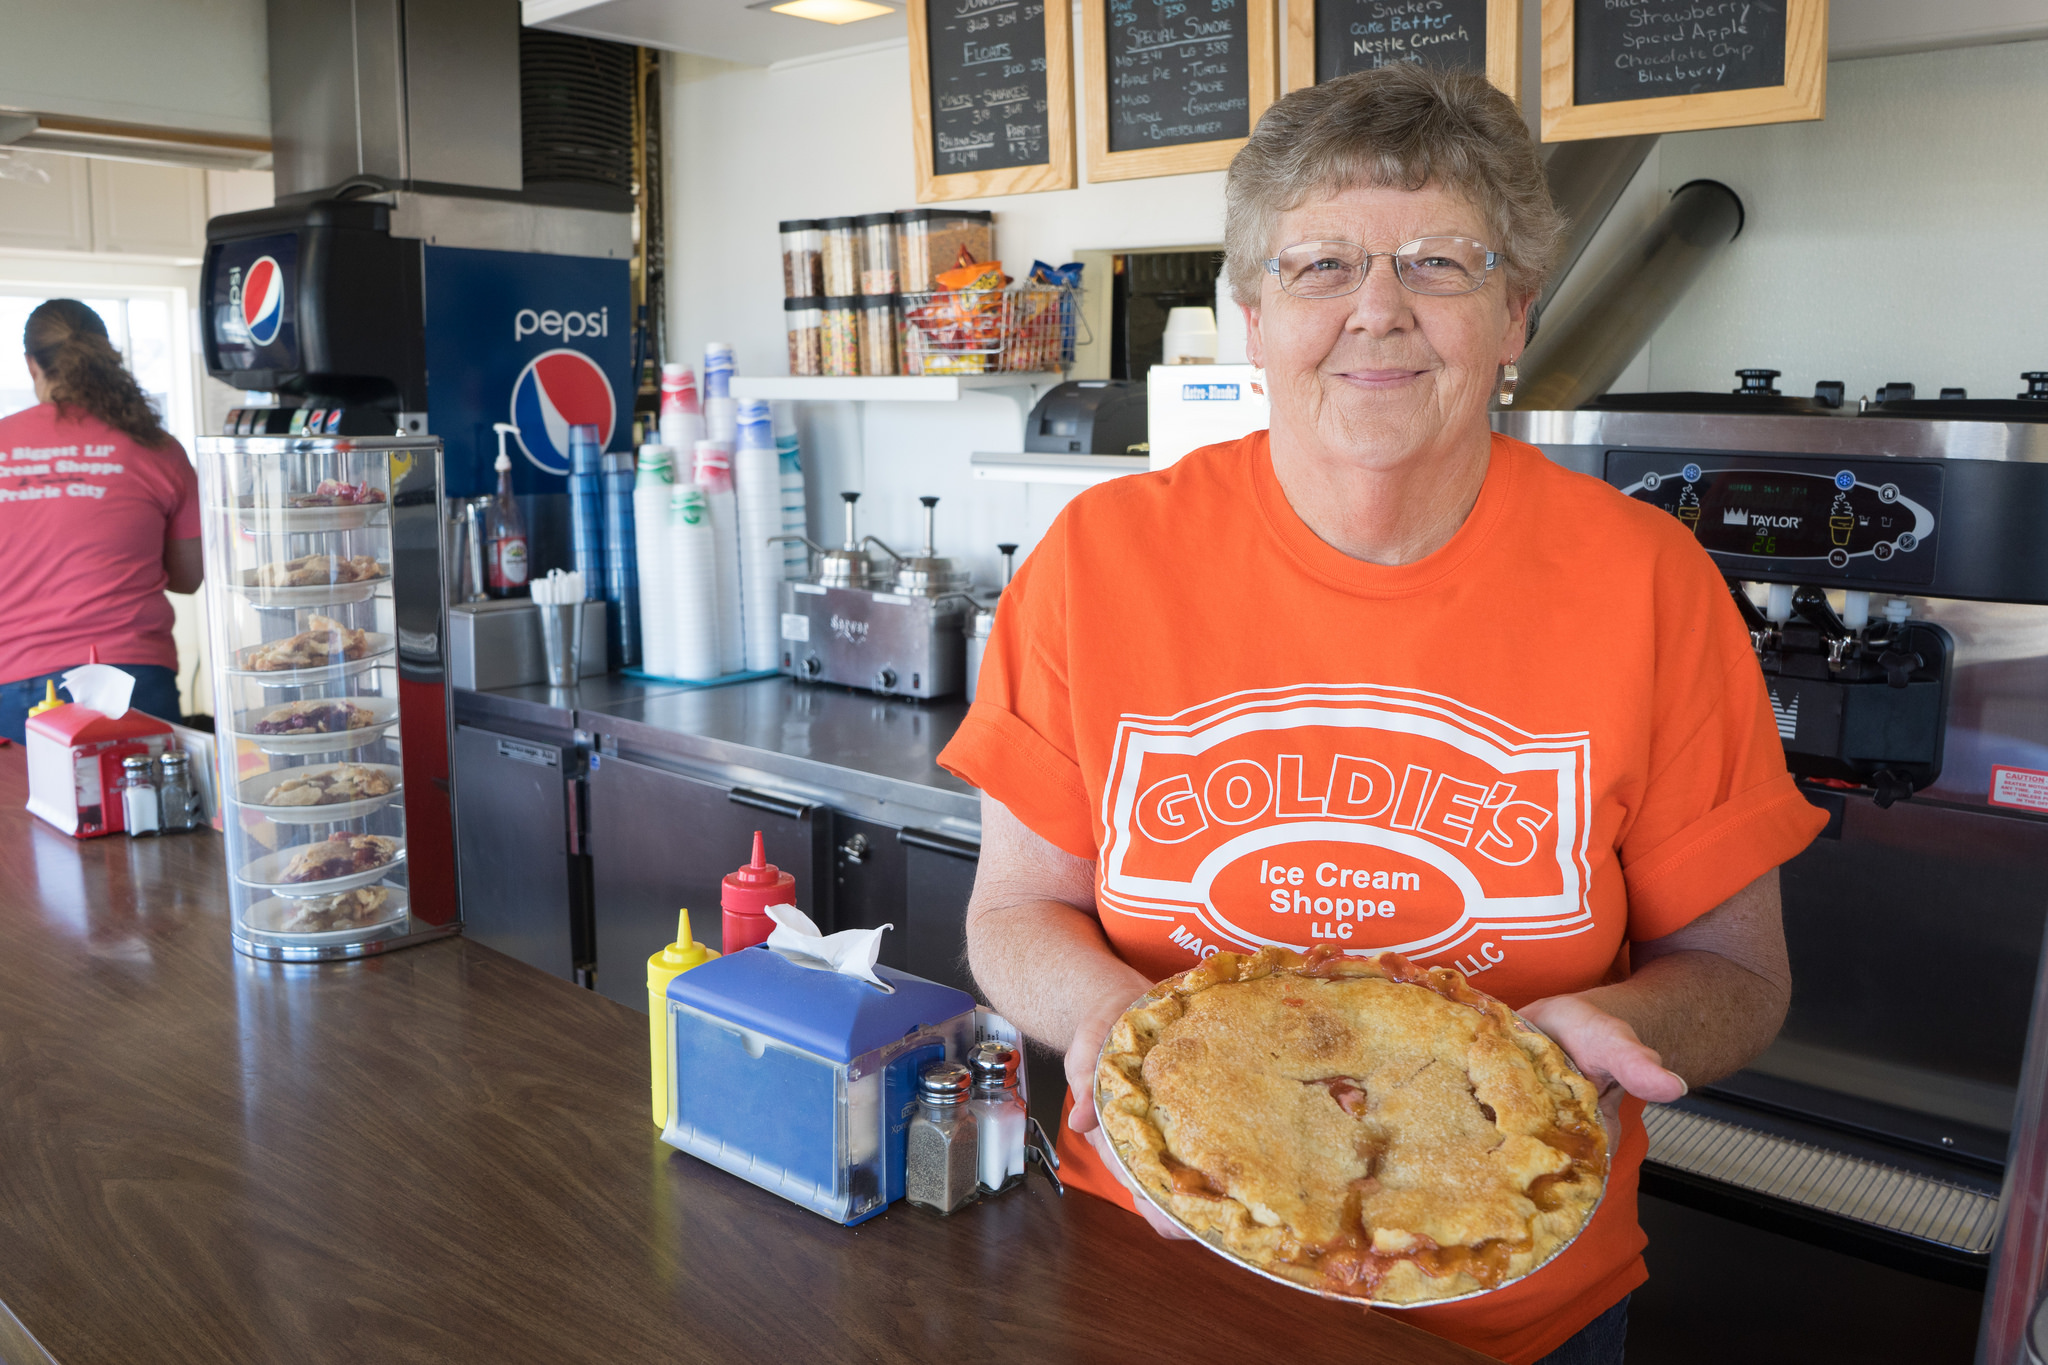 Goldie's Ice Cream Shoppe in Prairie City is home to delicious ice cream, sandwiches and pies. Photo credit: Joseph L. Murphy/Iowa Soybean Association